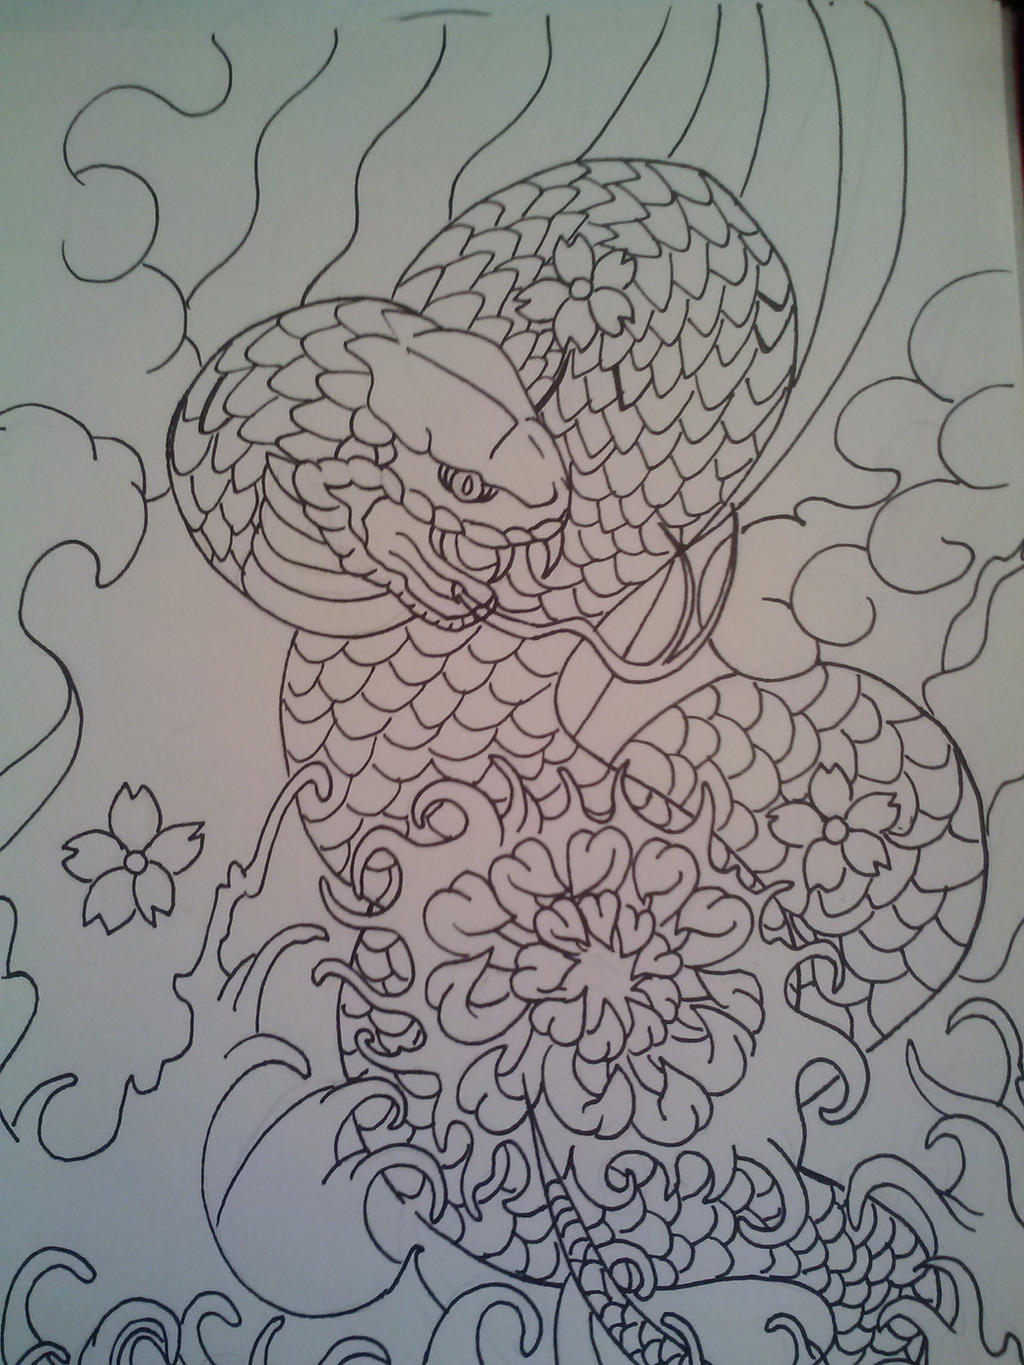 And lotus flower tattoo outline by samanthalyn1 on deviantart snake and lotus flower tattoo outline by samanthalyn1 izmirmasajfo Gallery